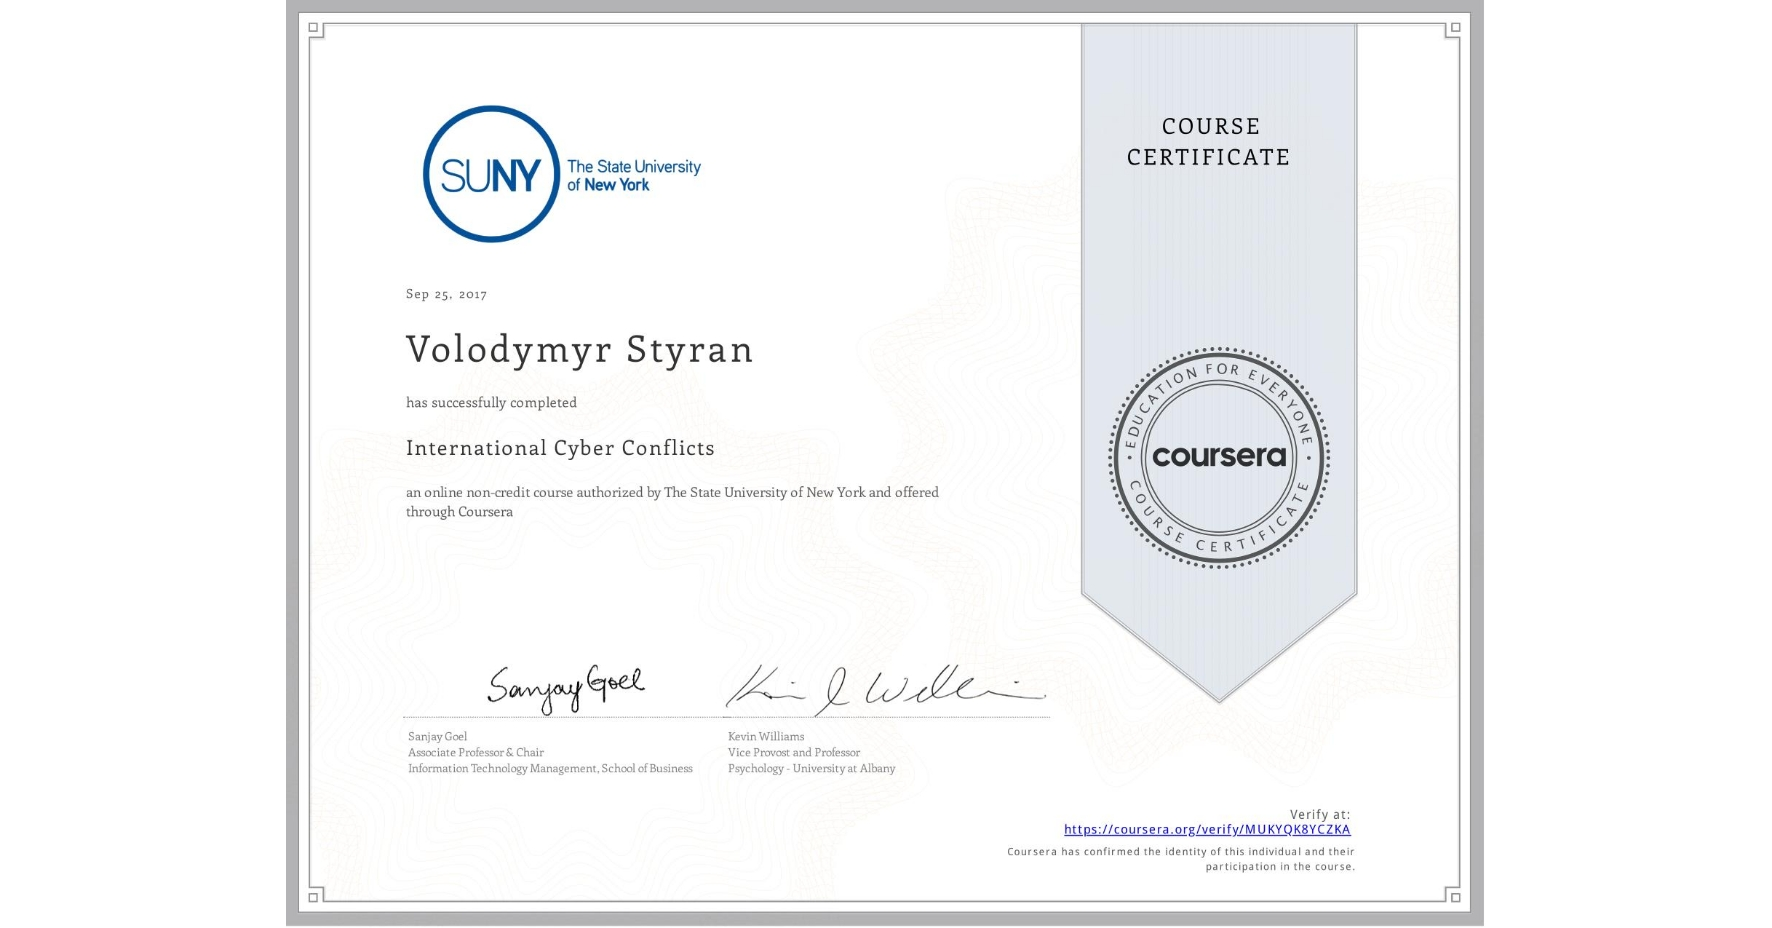 View certificate for Volodymyr Styran, International Cyber Conflicts, an online non-credit course authorized by The State University of New York and offered through Coursera